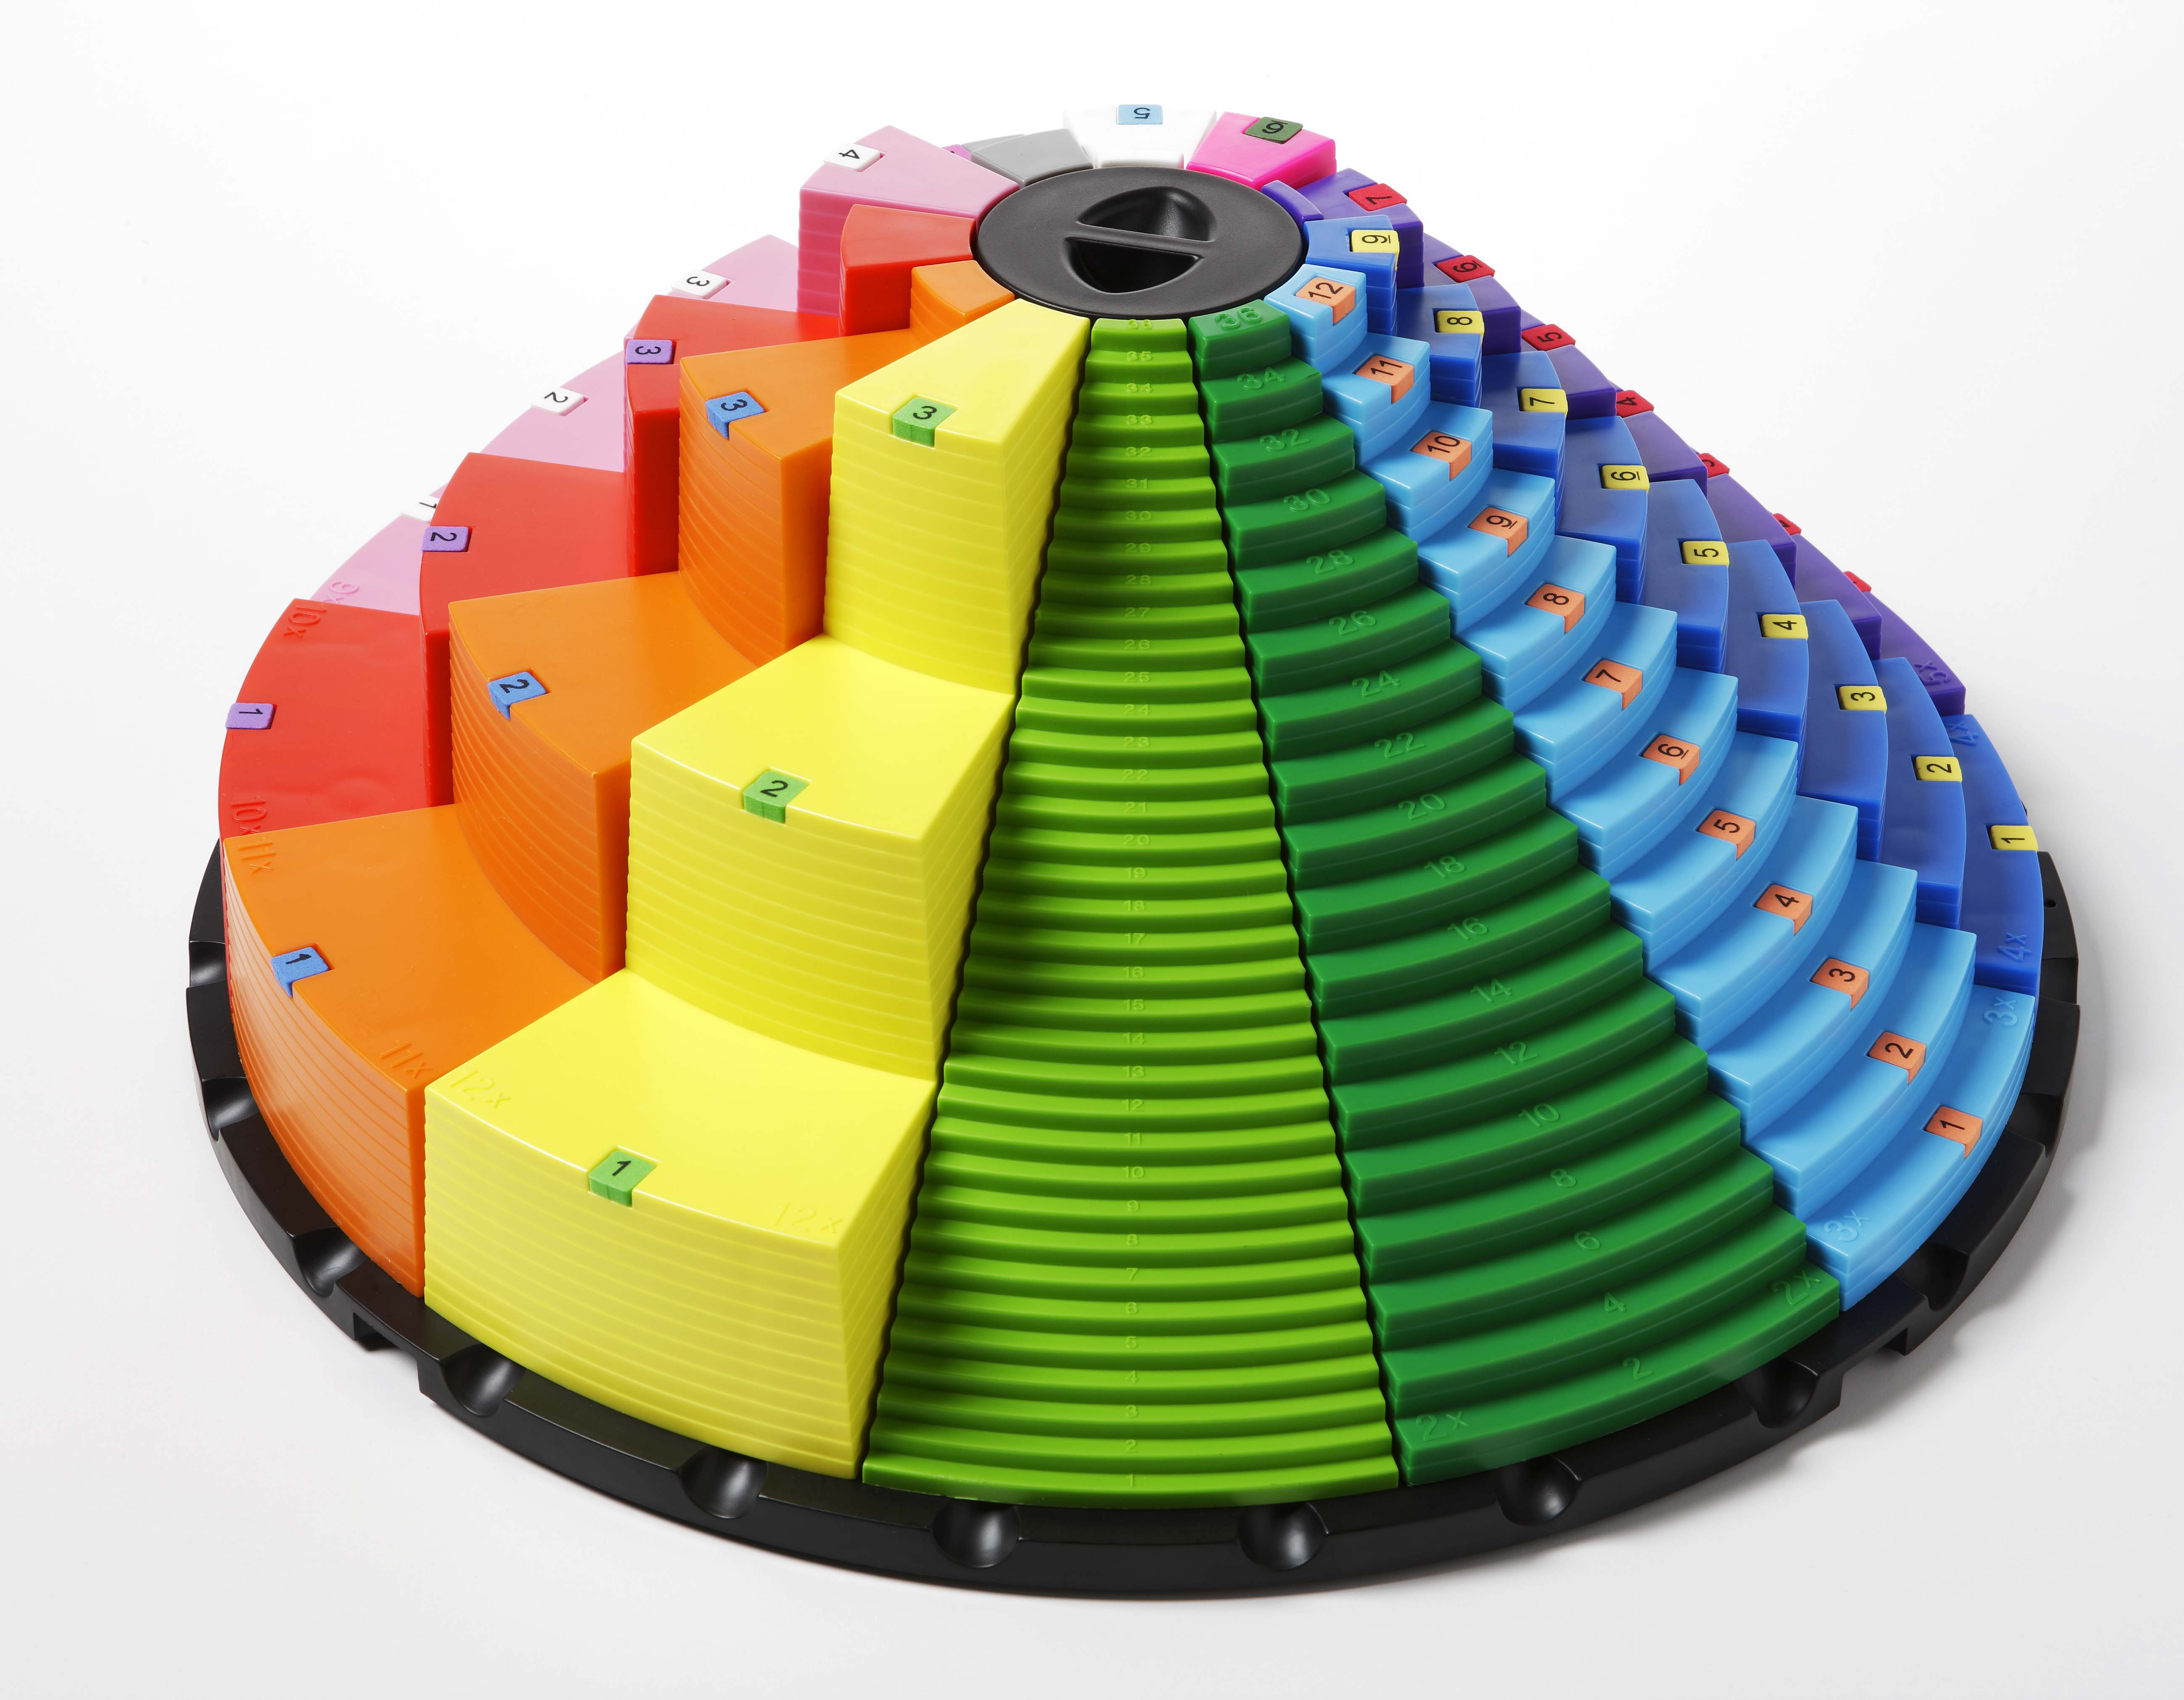 Zillio Inc Math Toy Amp Games Are Outstanding In Meeting